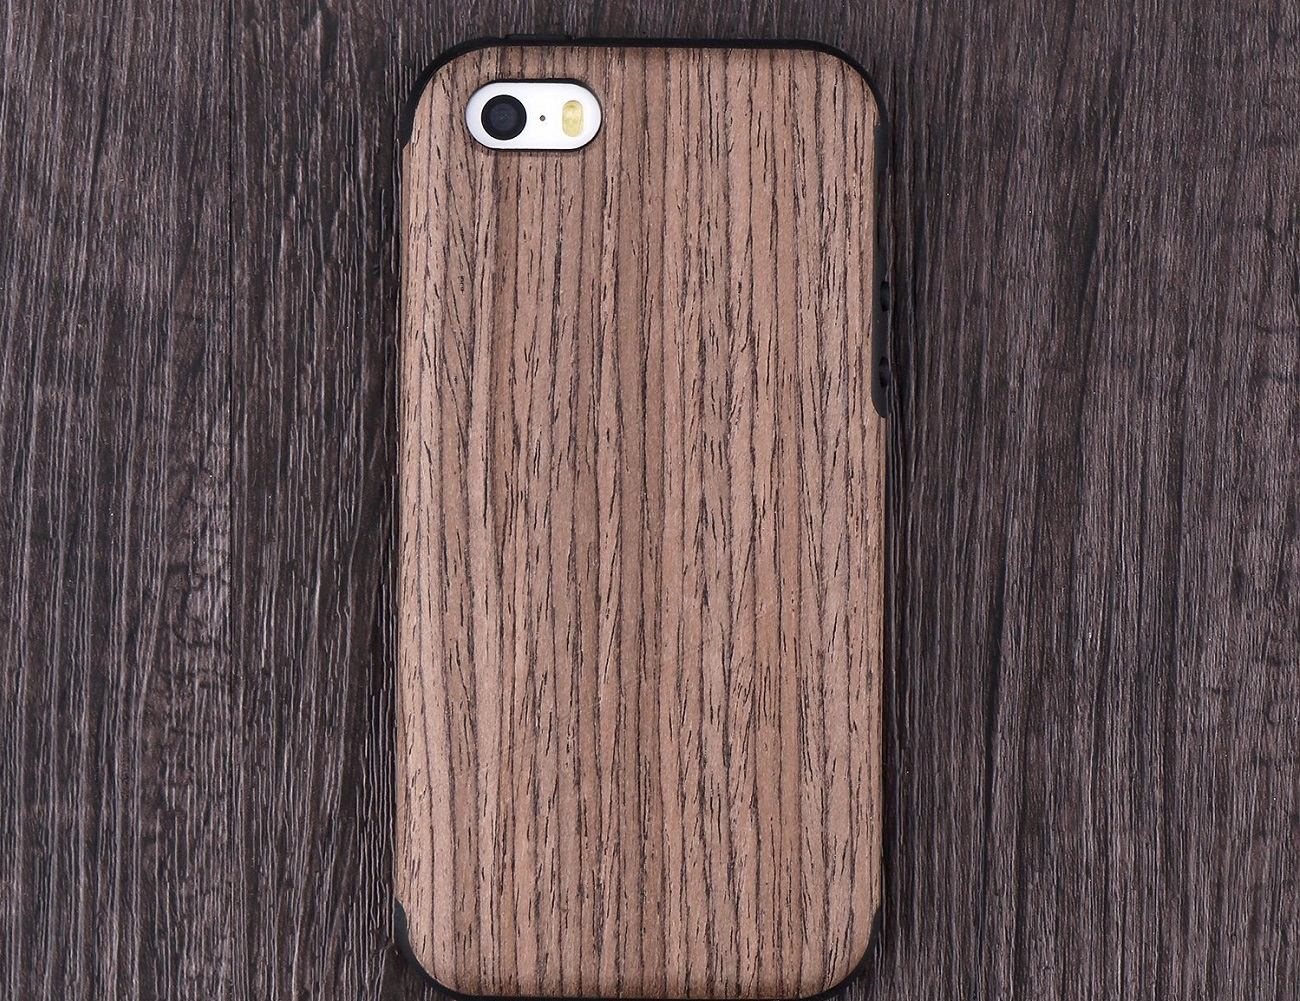 Rosewood Wood iPhone SE/5s Case by Recover loading=